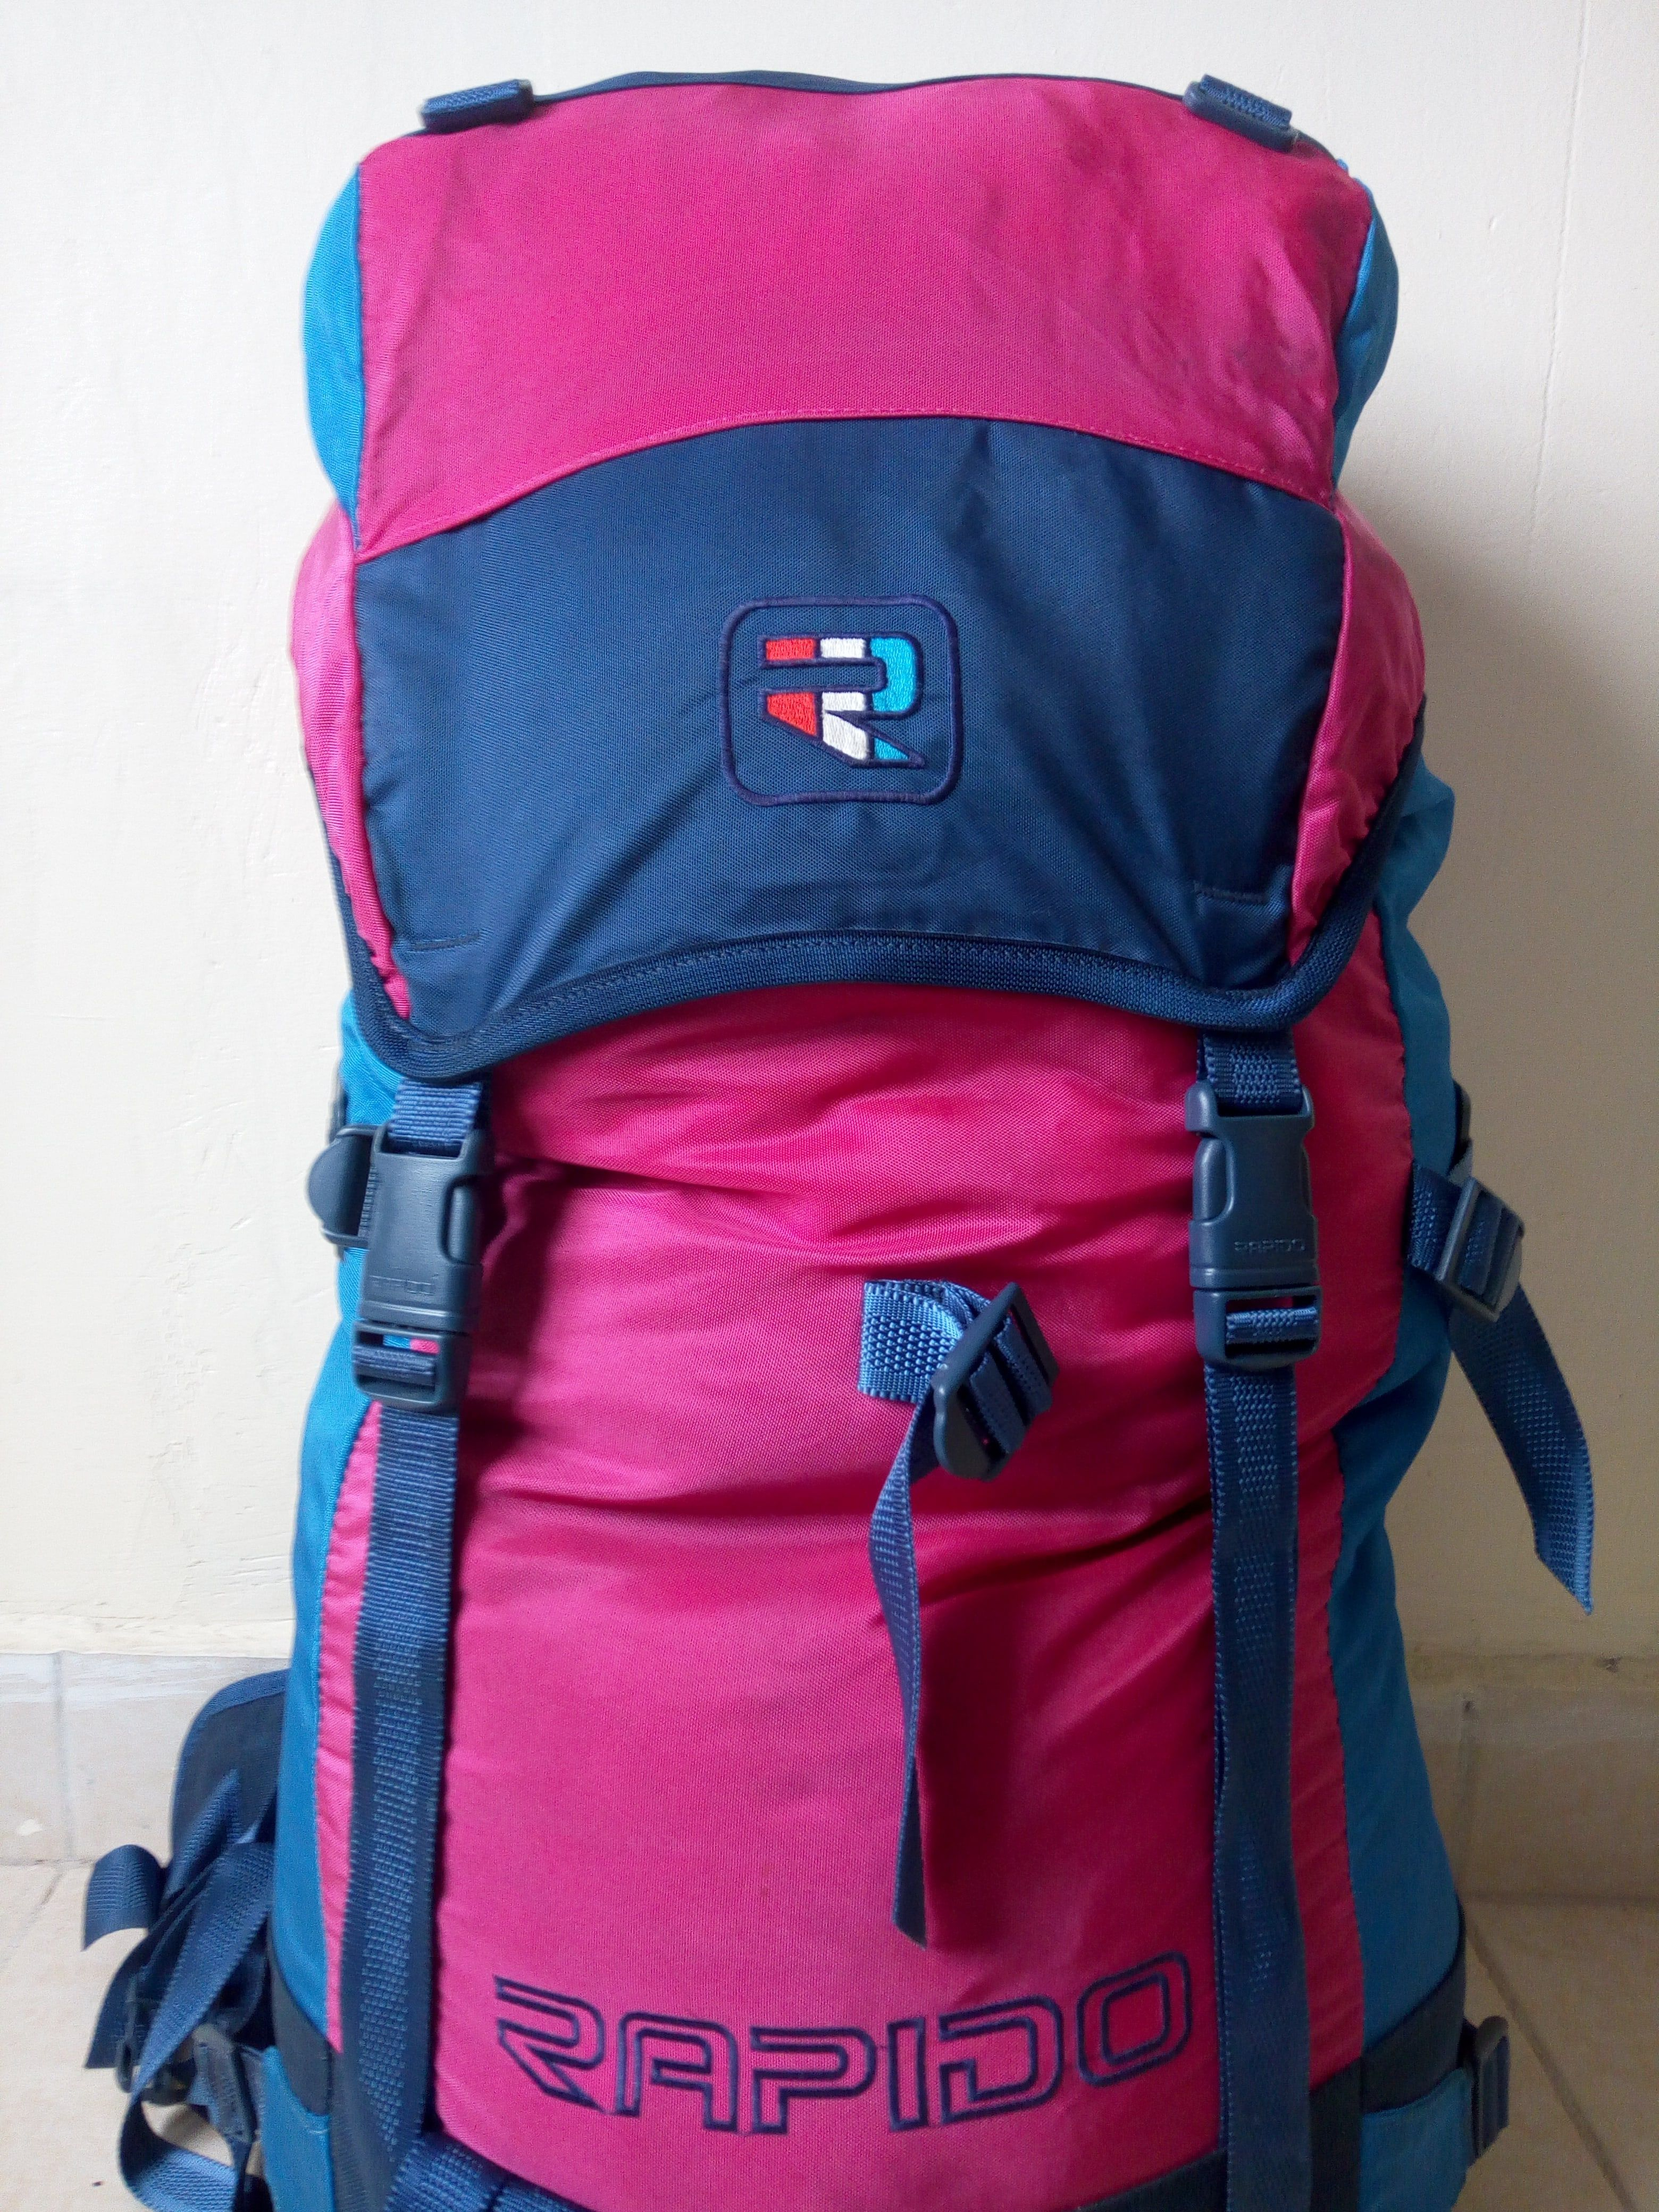 53c743d1f3 Rapido Medium sized Hiking Bag Backpack Rucksack